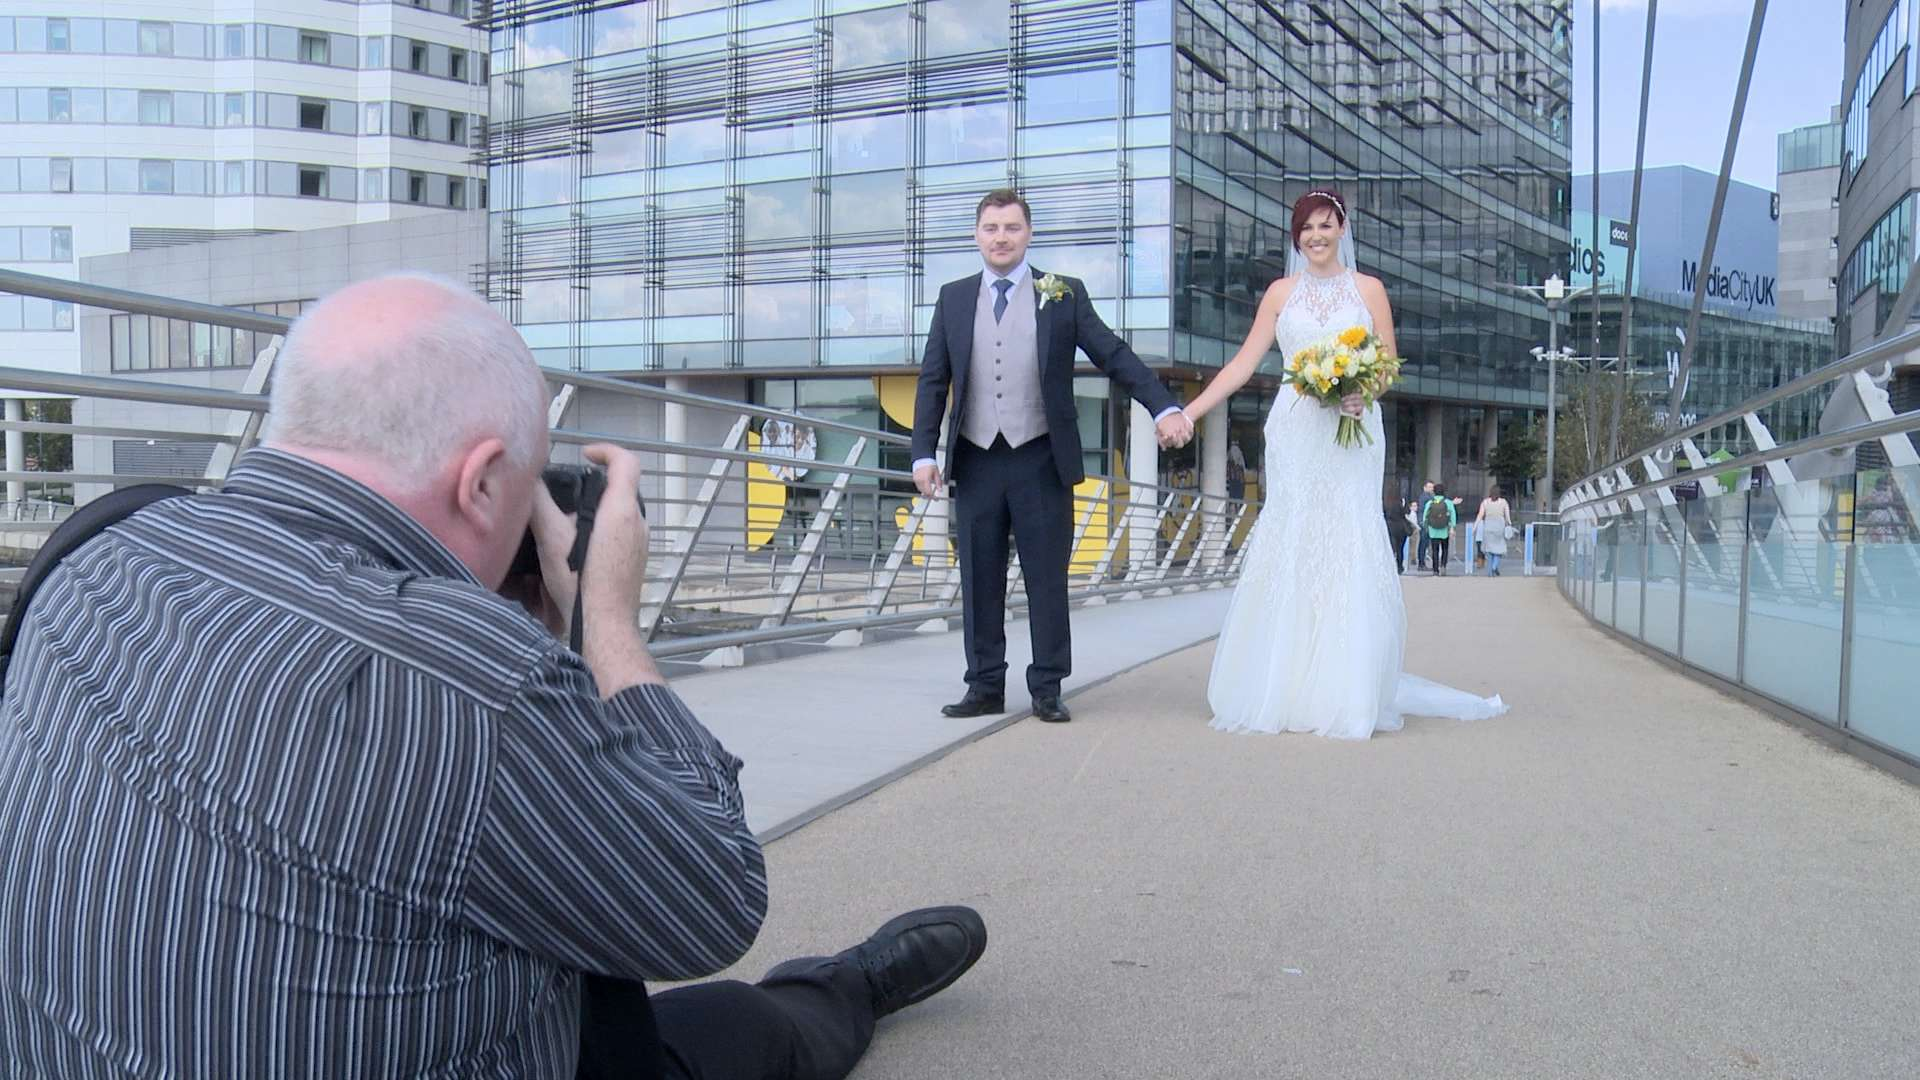 Will I Regret Not Having A Wedding Video?